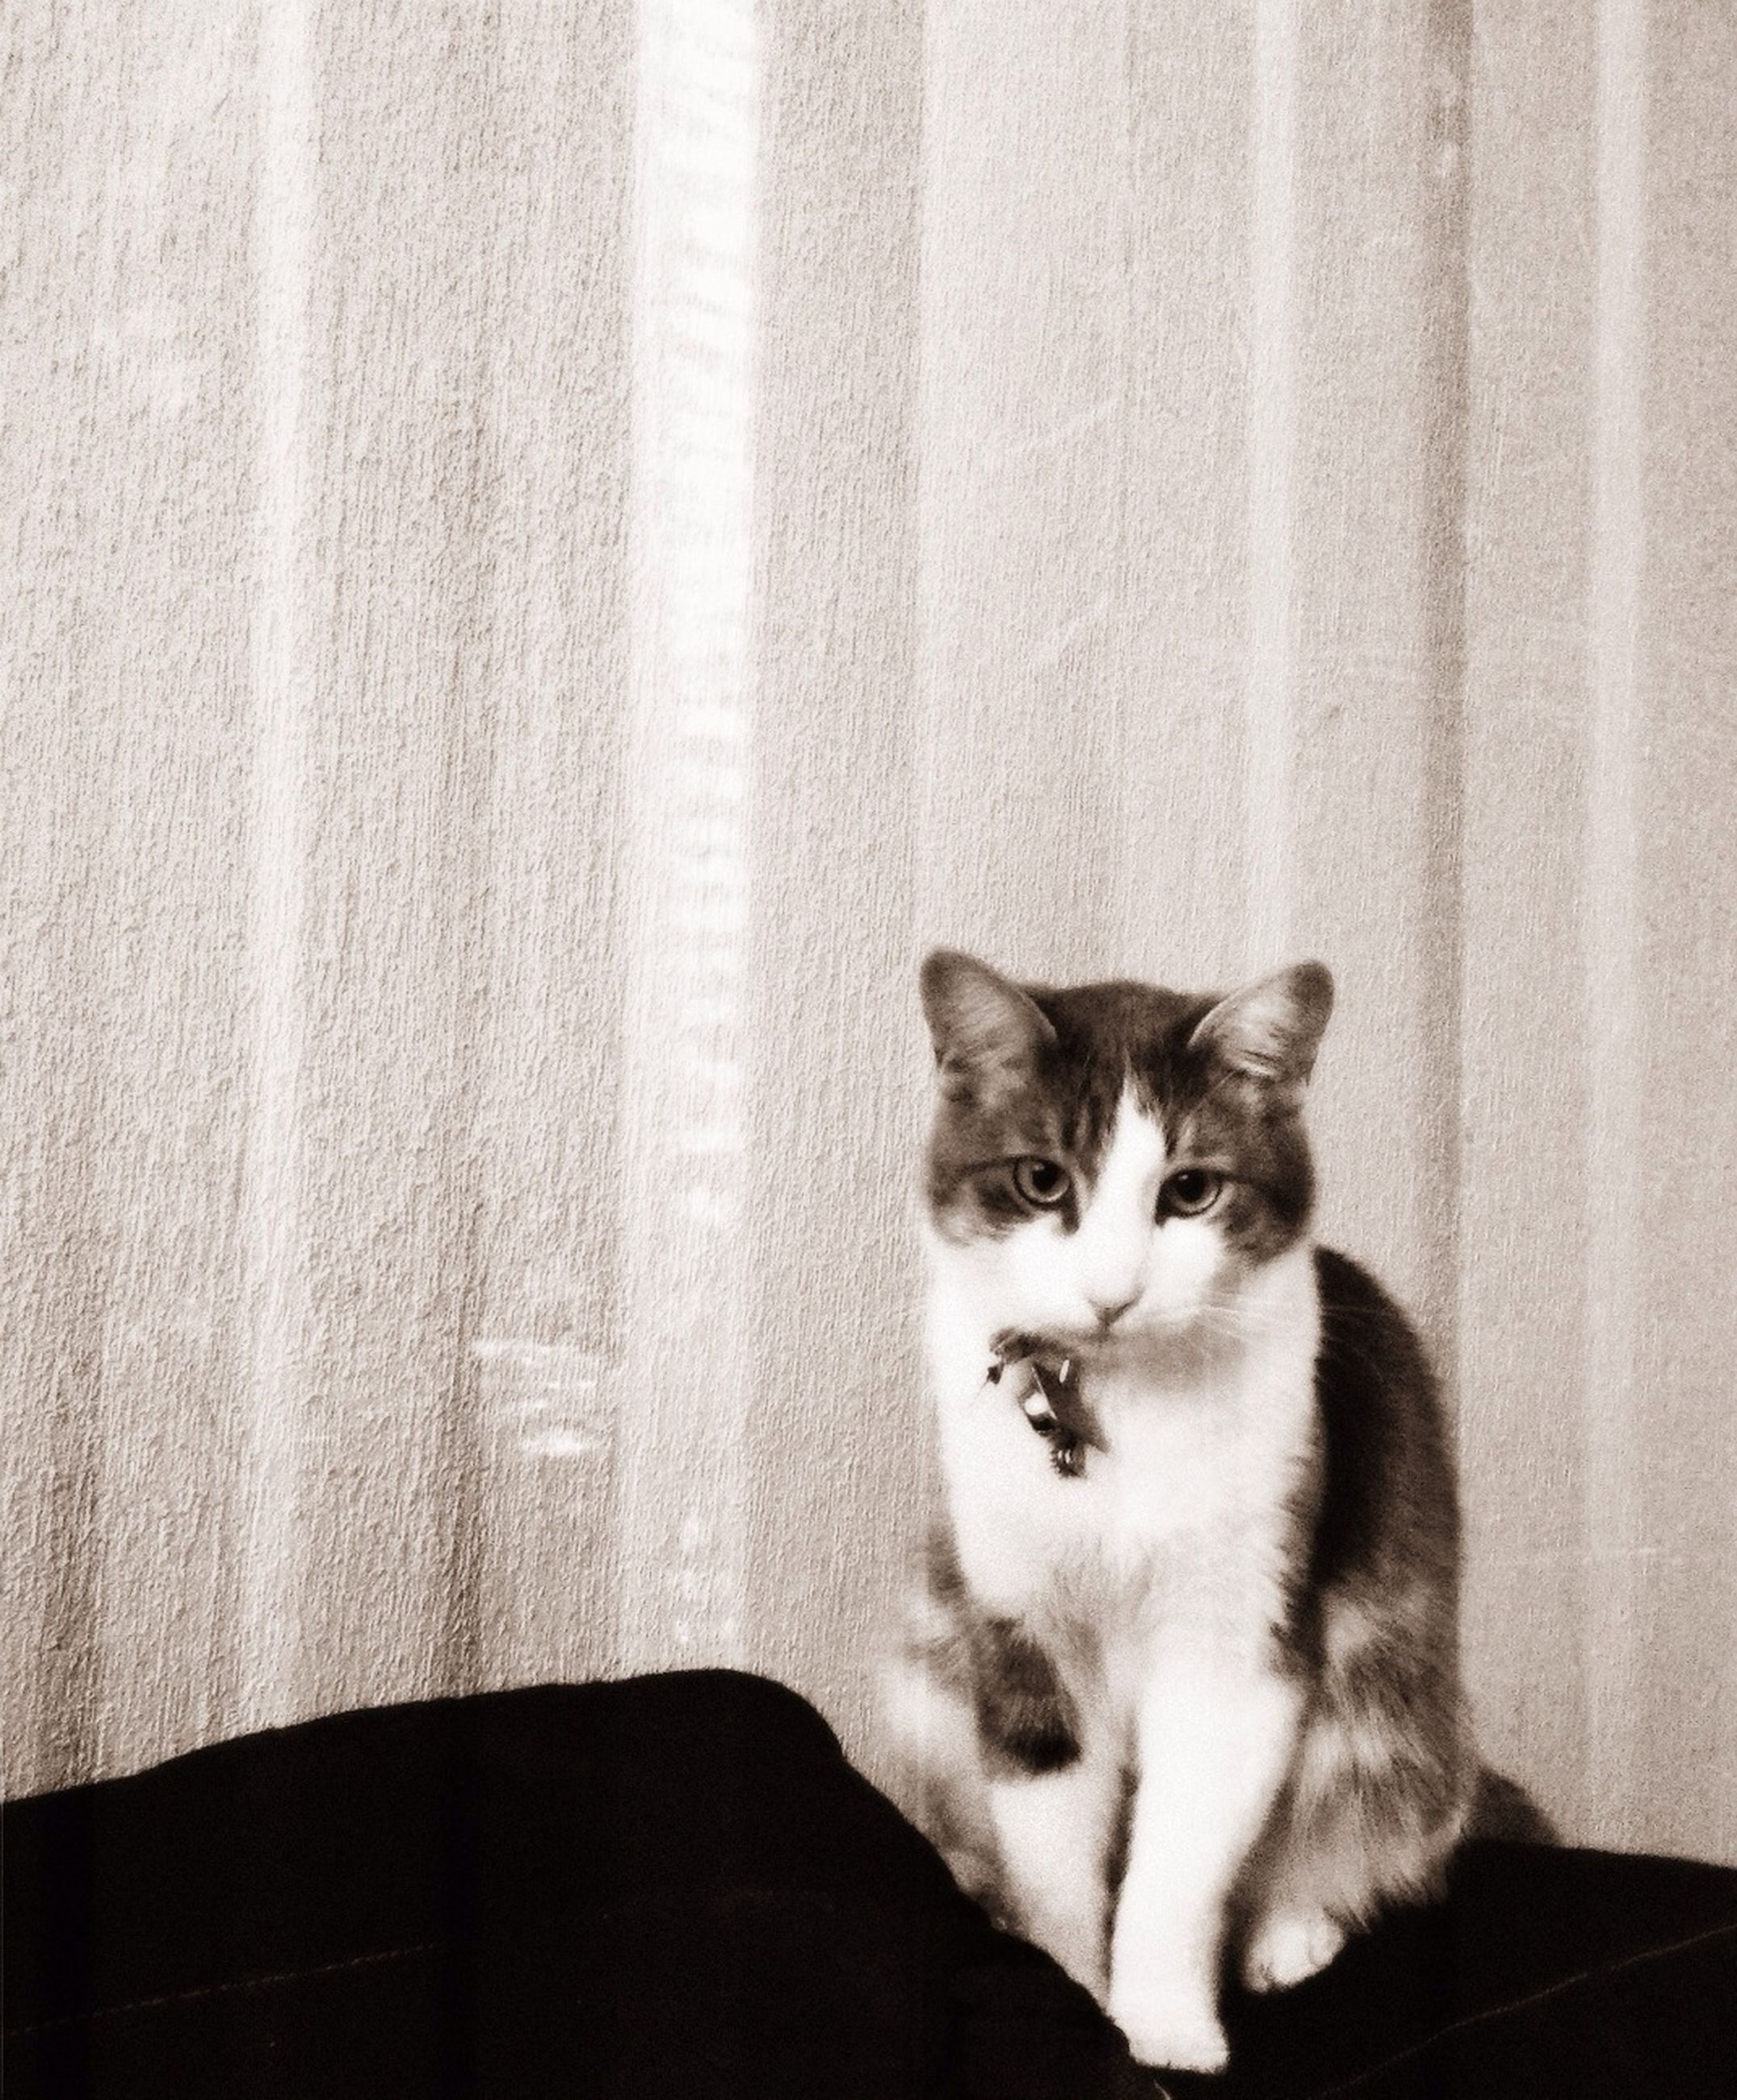 pets, domestic cat, domestic animals, cat, mammal, animal themes, feline, one animal, portrait, looking at camera, indoors, whisker, relaxation, sitting, wall - building feature, home interior, staring, no people, front view, alertness